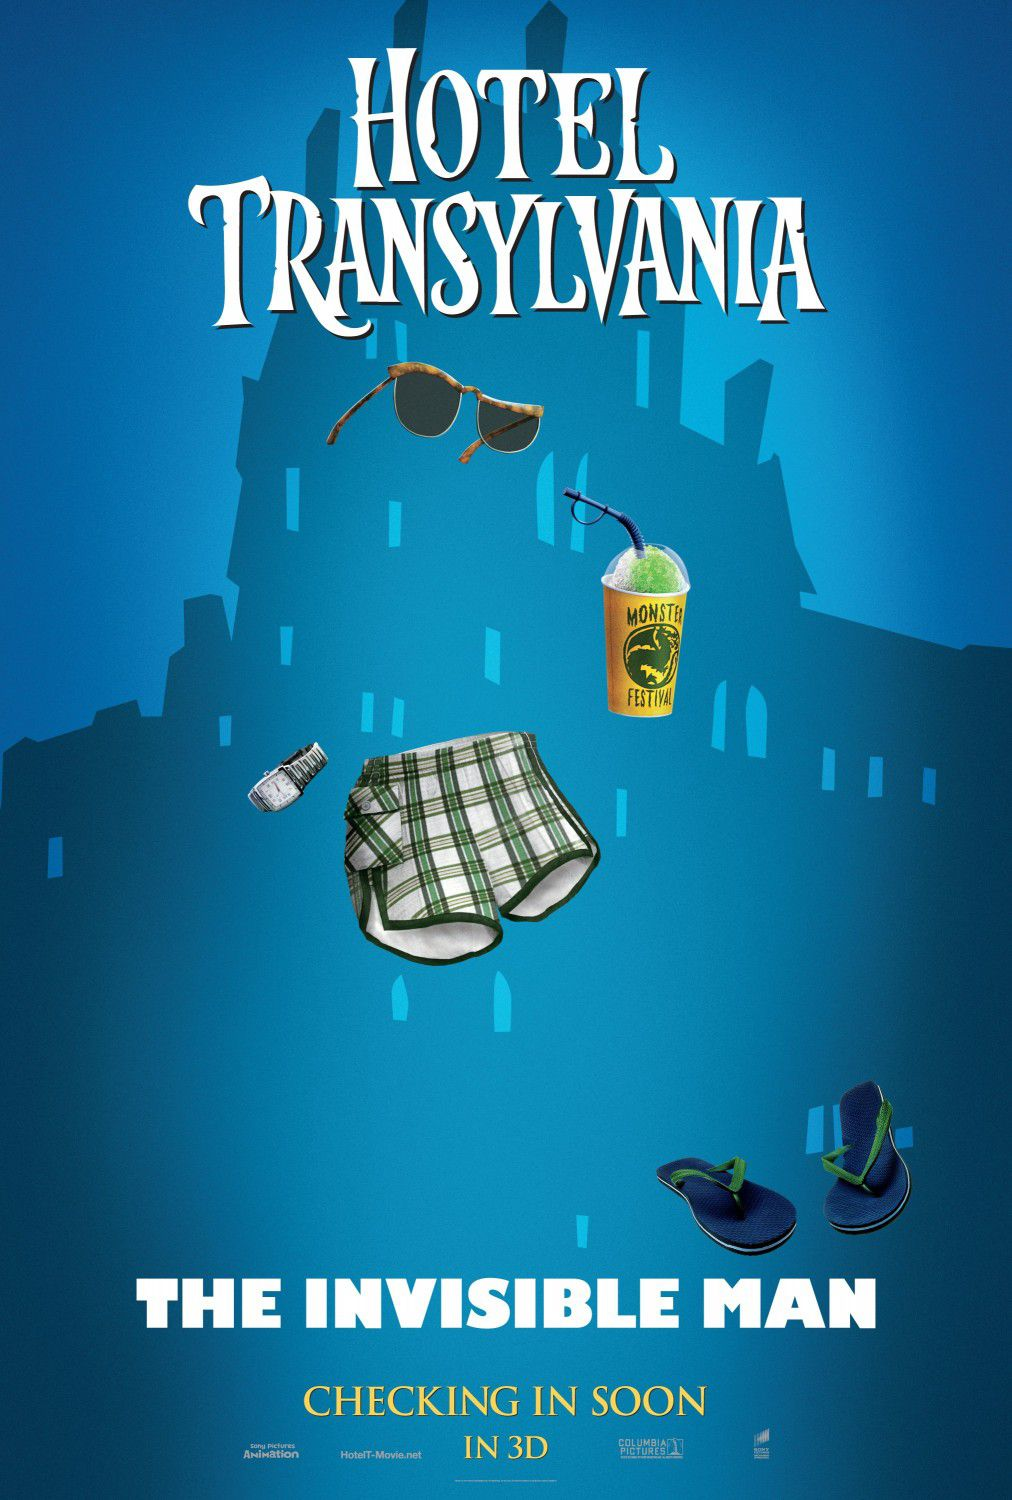 Hotel Transylvania - Invisible Man